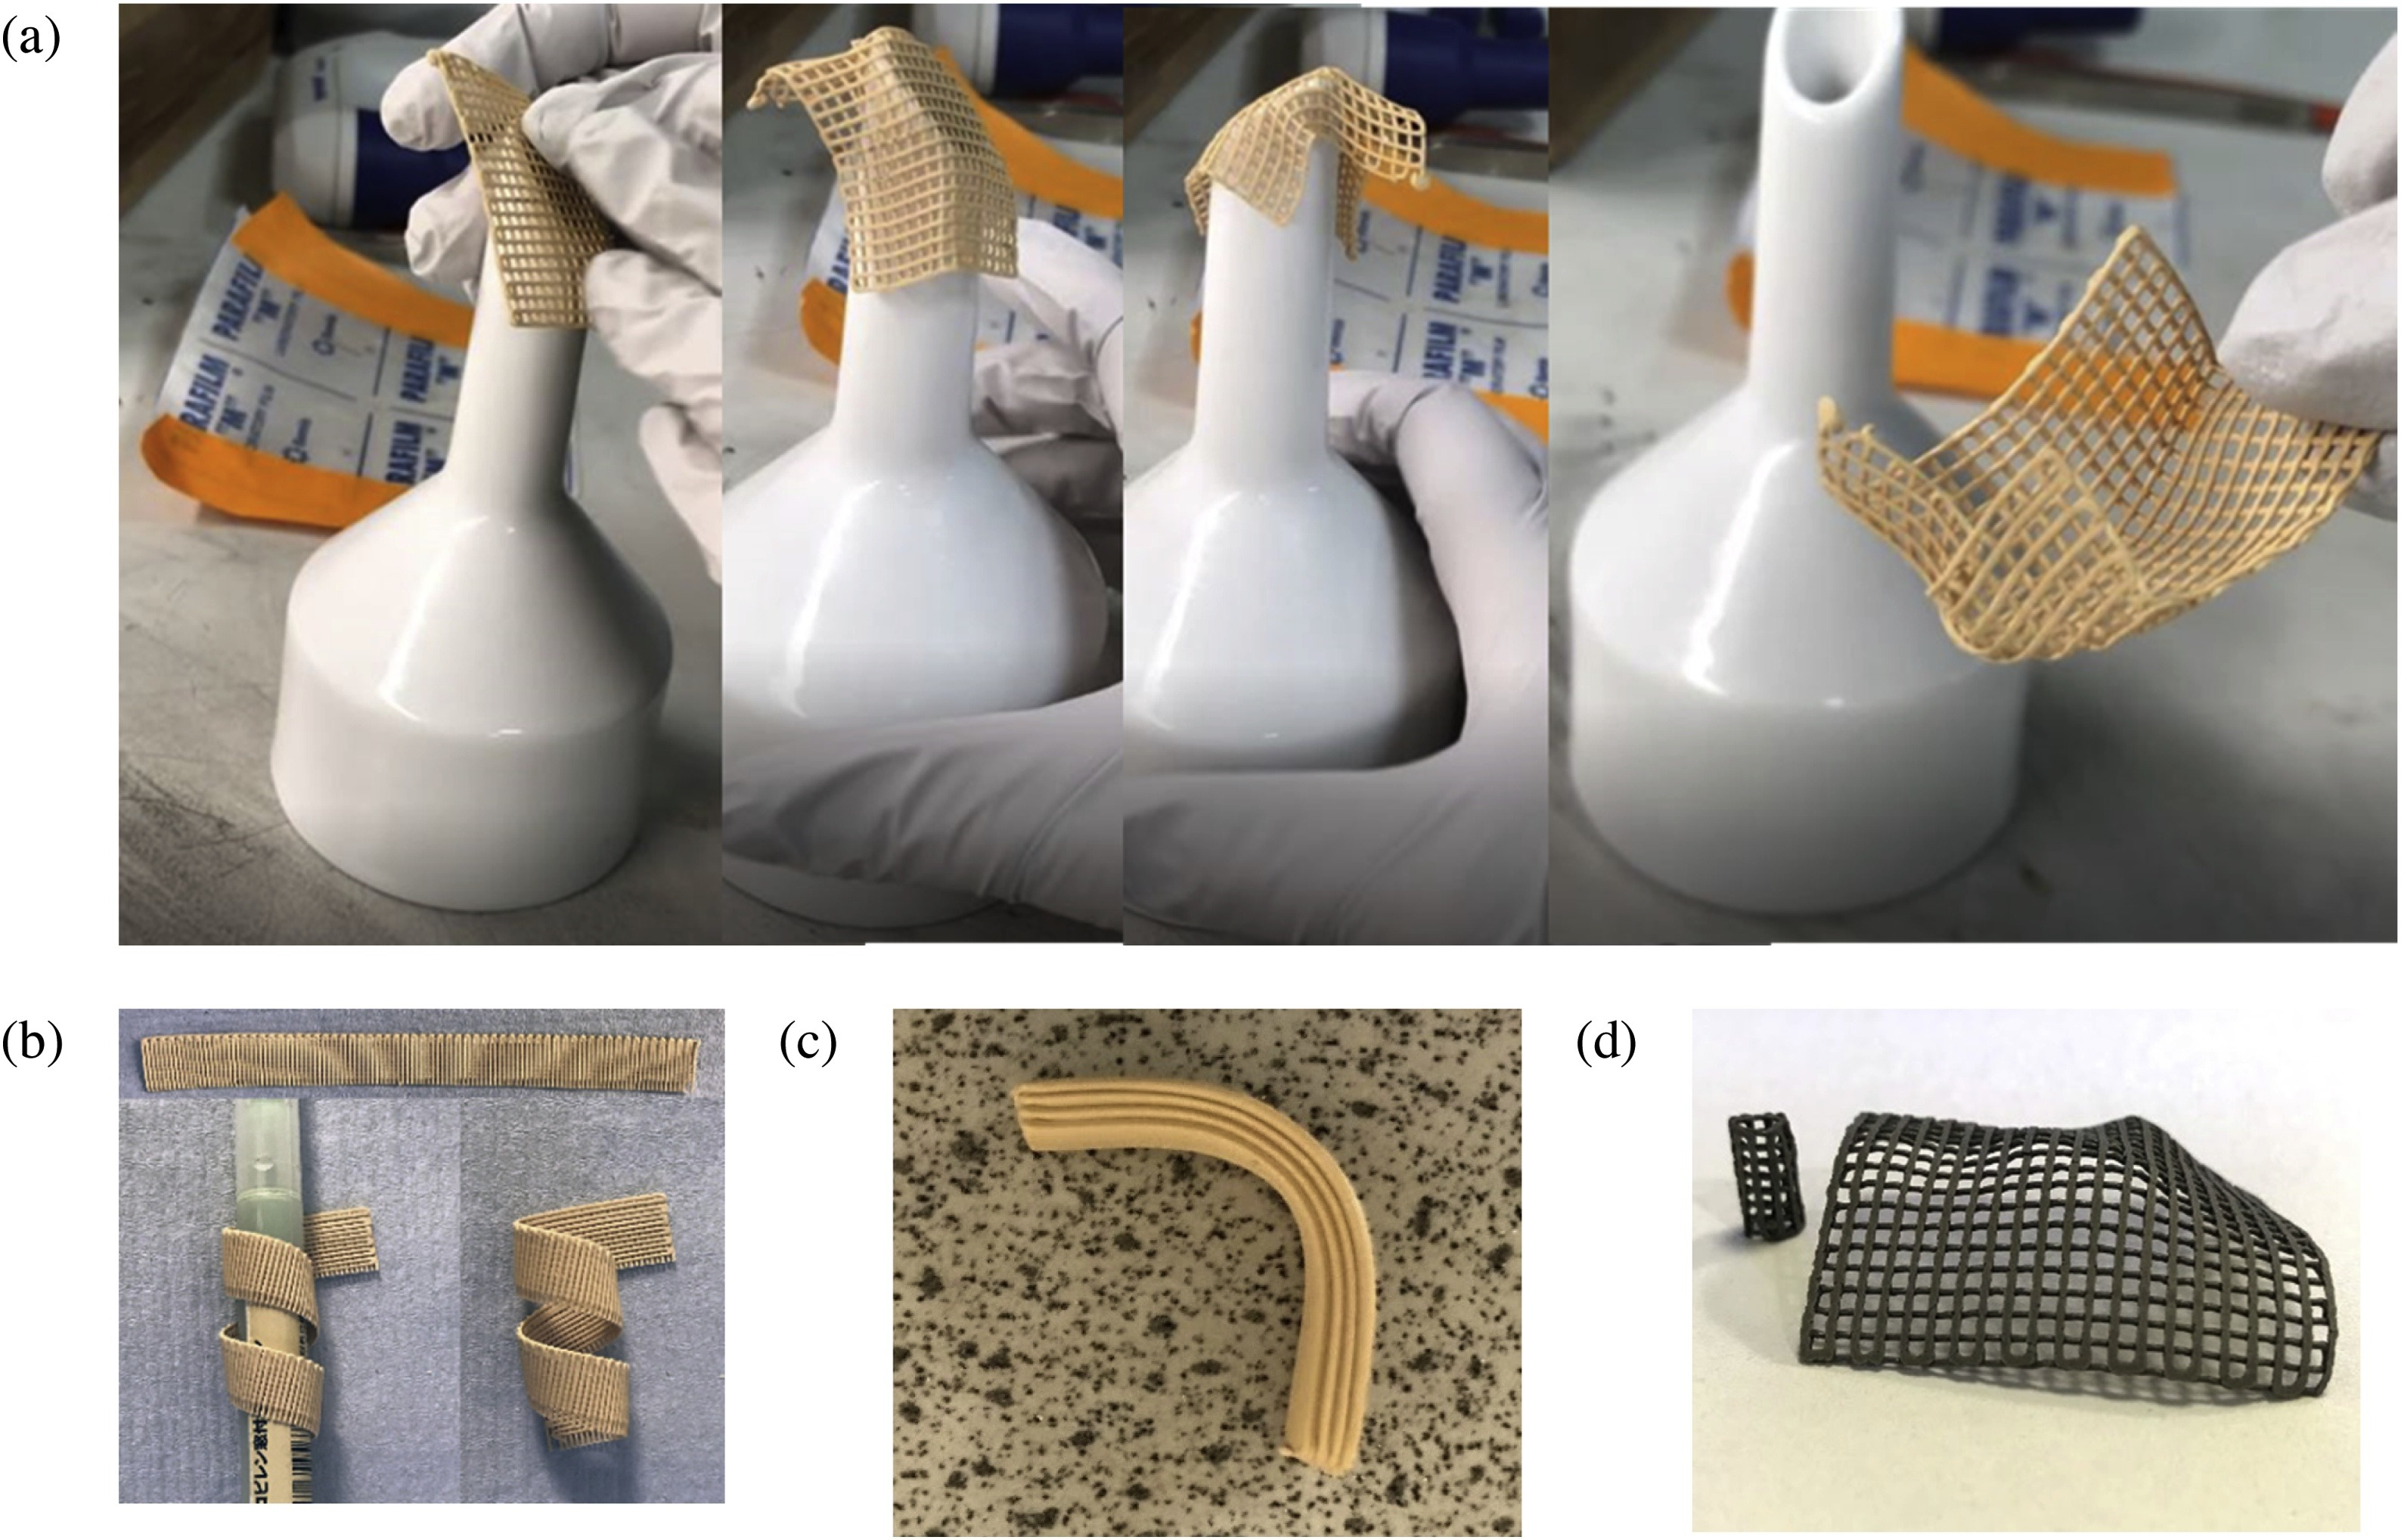 "An image from the journal paper Conformable green bodies: Plastic forming of robocasted advanced ceramics - ""Showcase of the conformability of the printed parts - Al2O3 nets moulded against sharp (a) and rounded (b) objects after 7 -h air-drying, Al2O3 bar bent after 18 -h air-drying (c), α-SiC/B4C nets shaped after 10-minute air-drying (d)."" from the journal paper Conformable green bodies: Plastic forming of robocasted advanced ceramics"